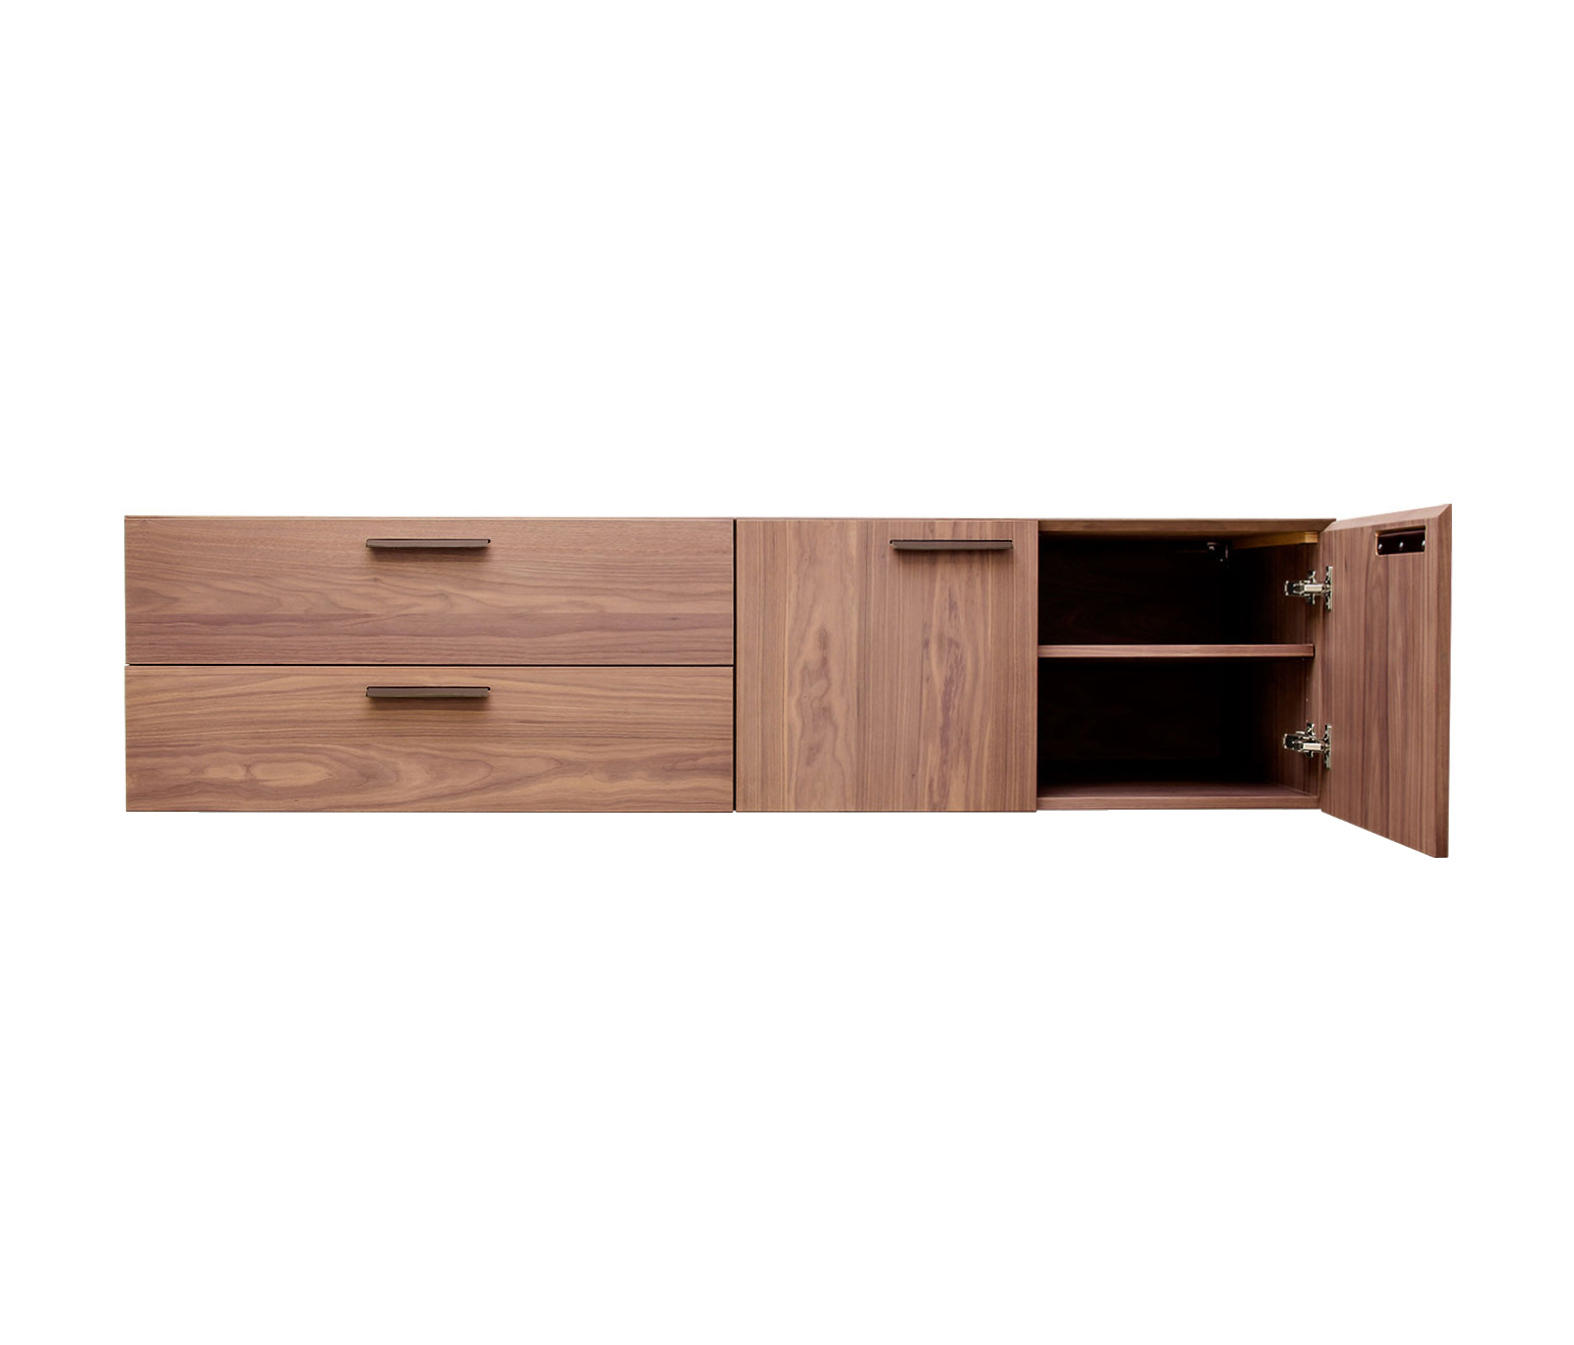 SHALE 2 DOOR - 2 DRAWER WALL-MOUNTED CABINET - Sideboards from Blu ...